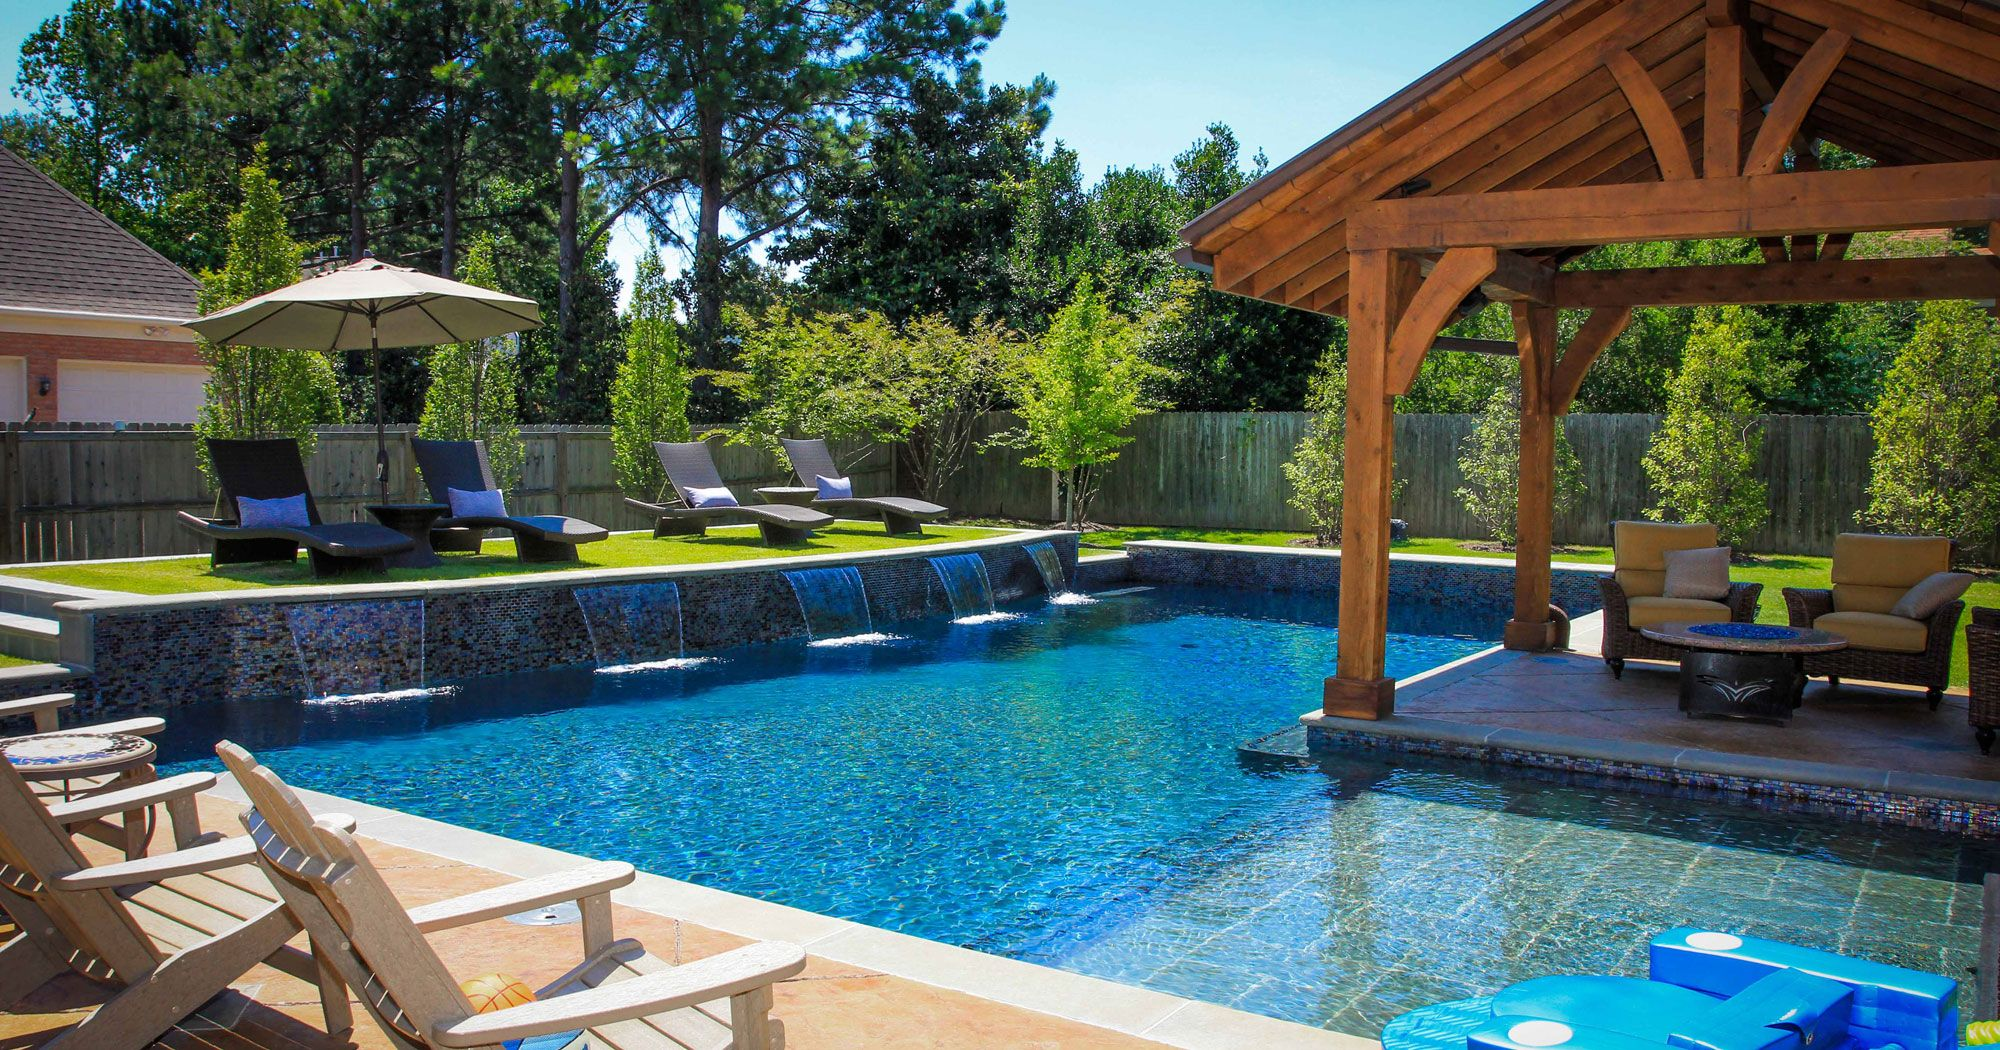 Beautiful Backyards With Pools 42